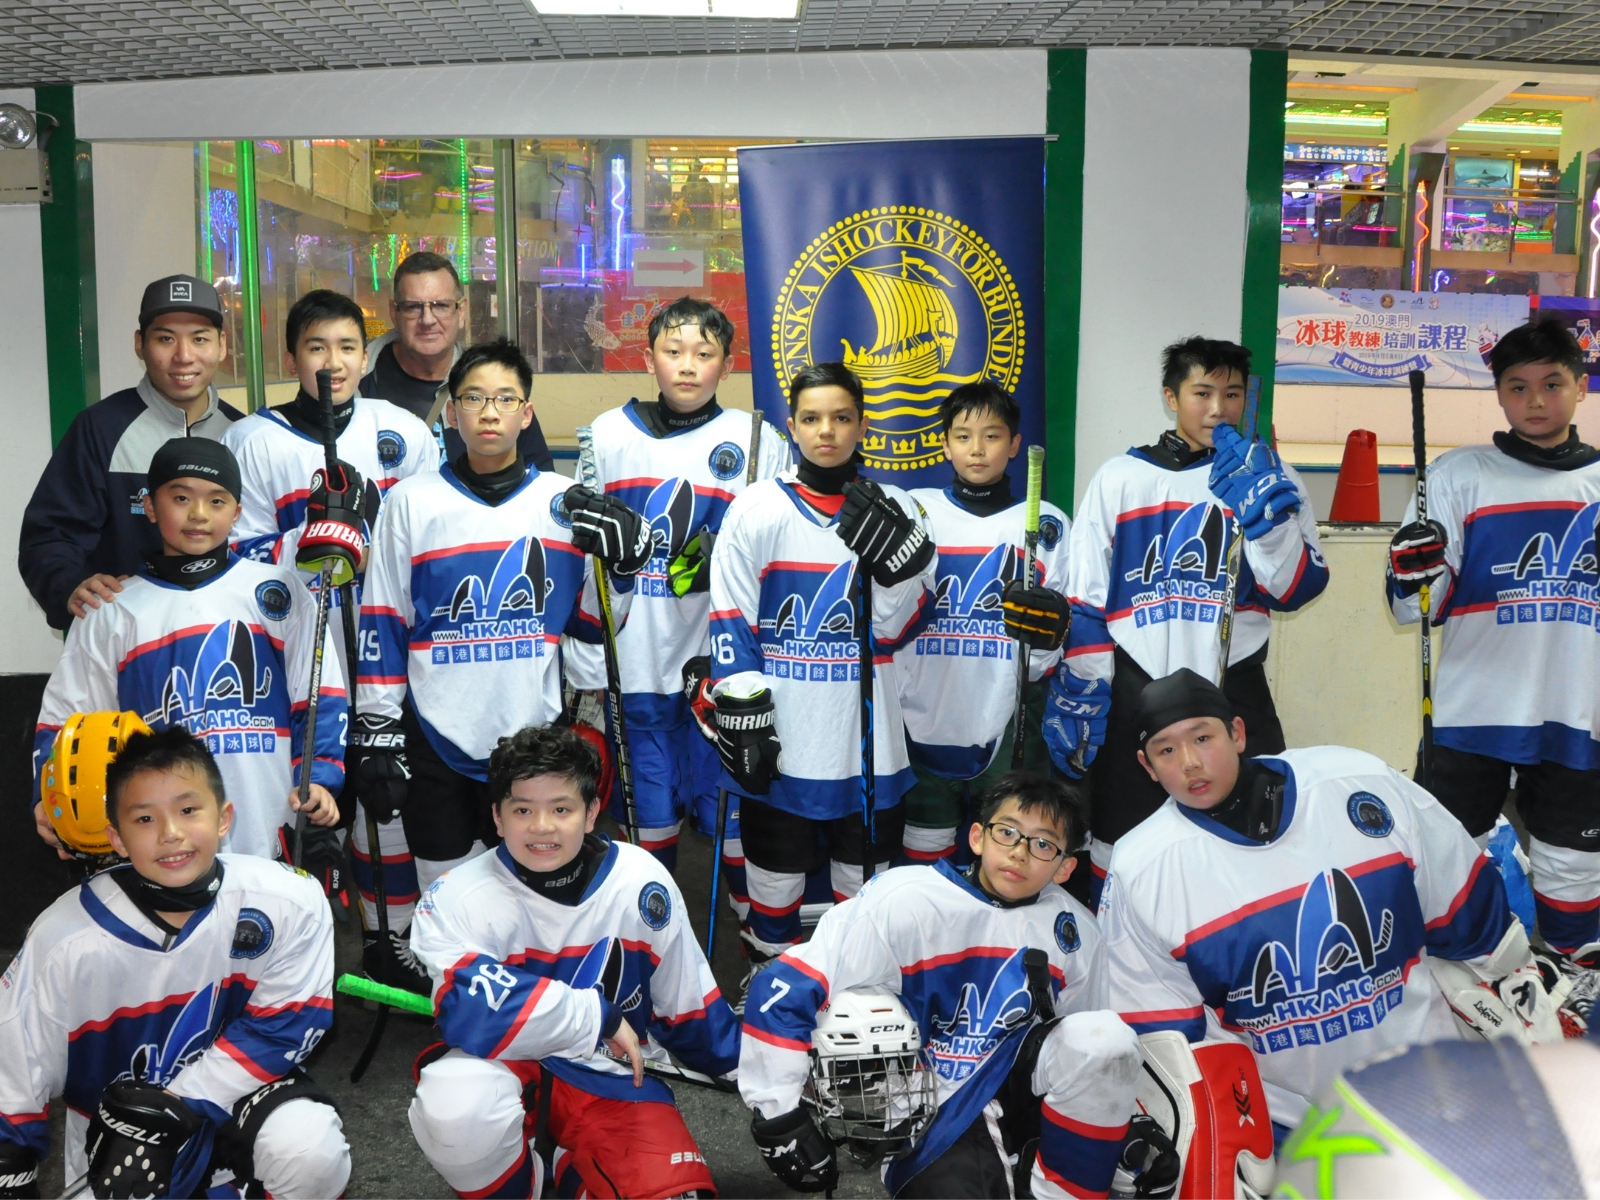 Macau Ice Hockey 6